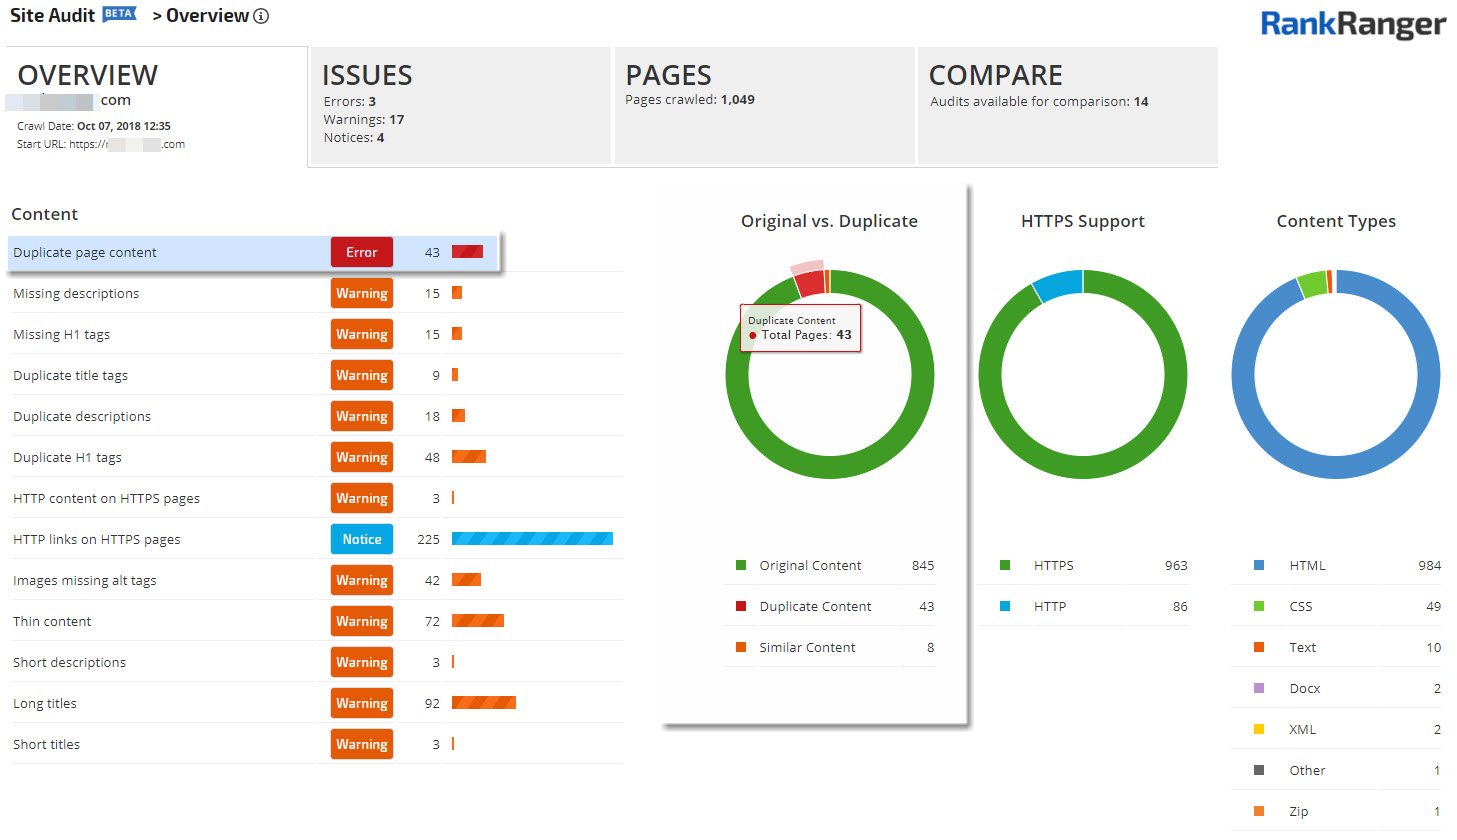 Site Audit Content Widgets